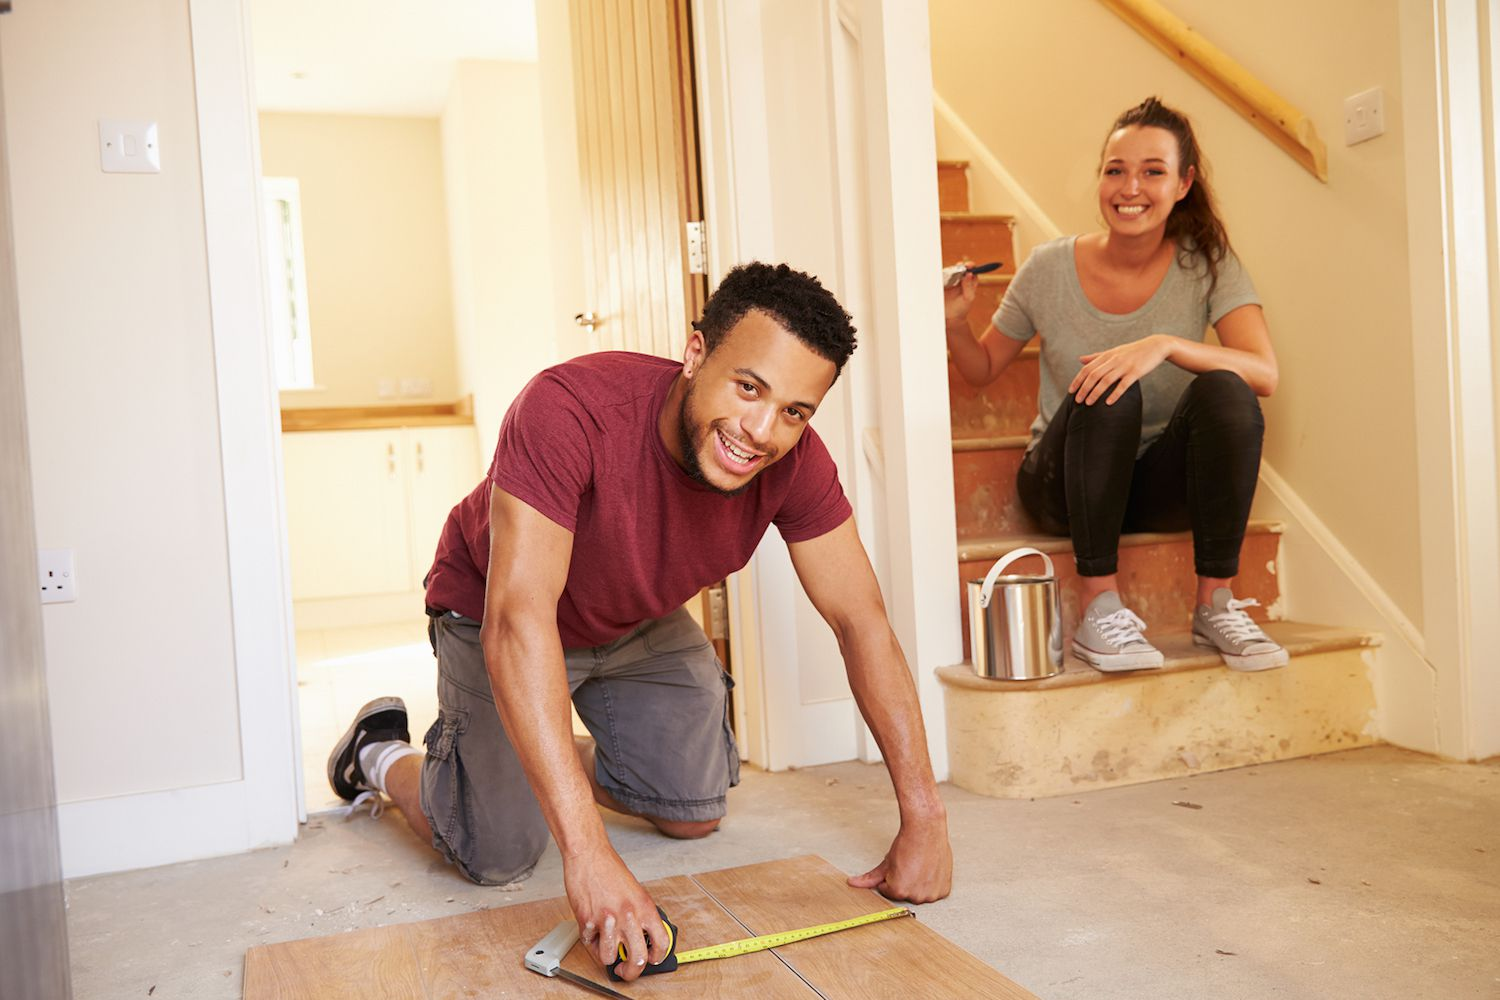 Want to up your home's resale value? Focus on these 8 projects.